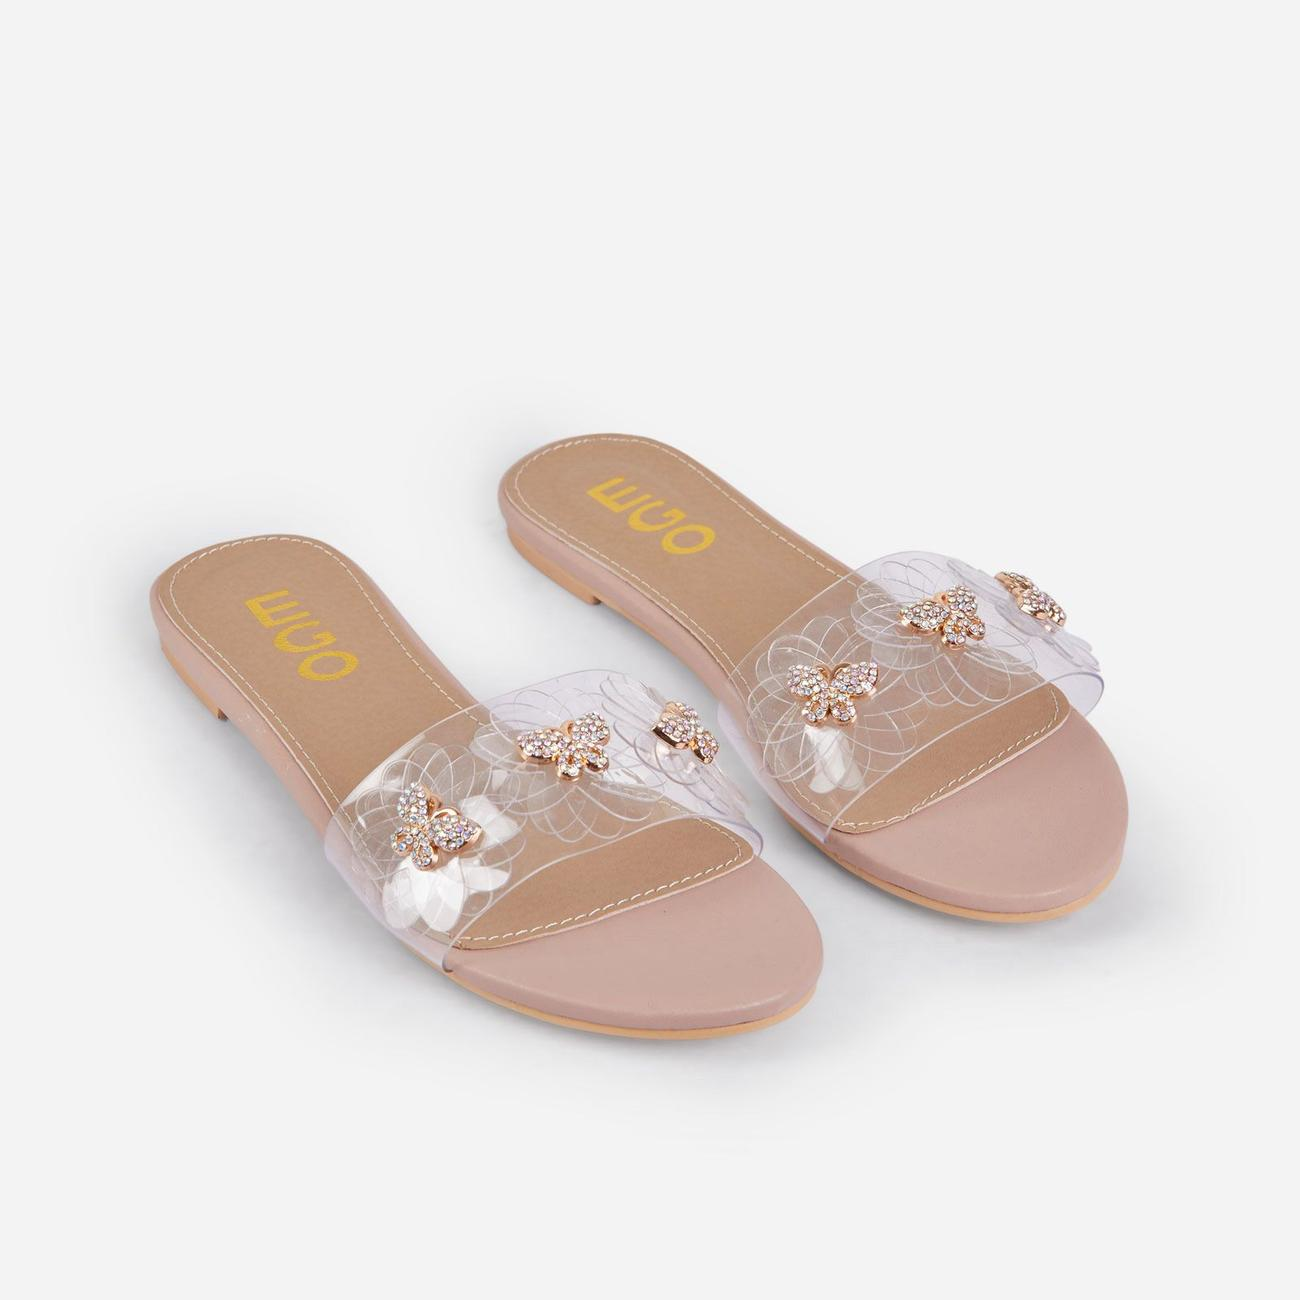 Lily Diamante Butterfly Detail Floral Clear Perspex Flat Slider Sandal In Nude Faux Leather Image 2